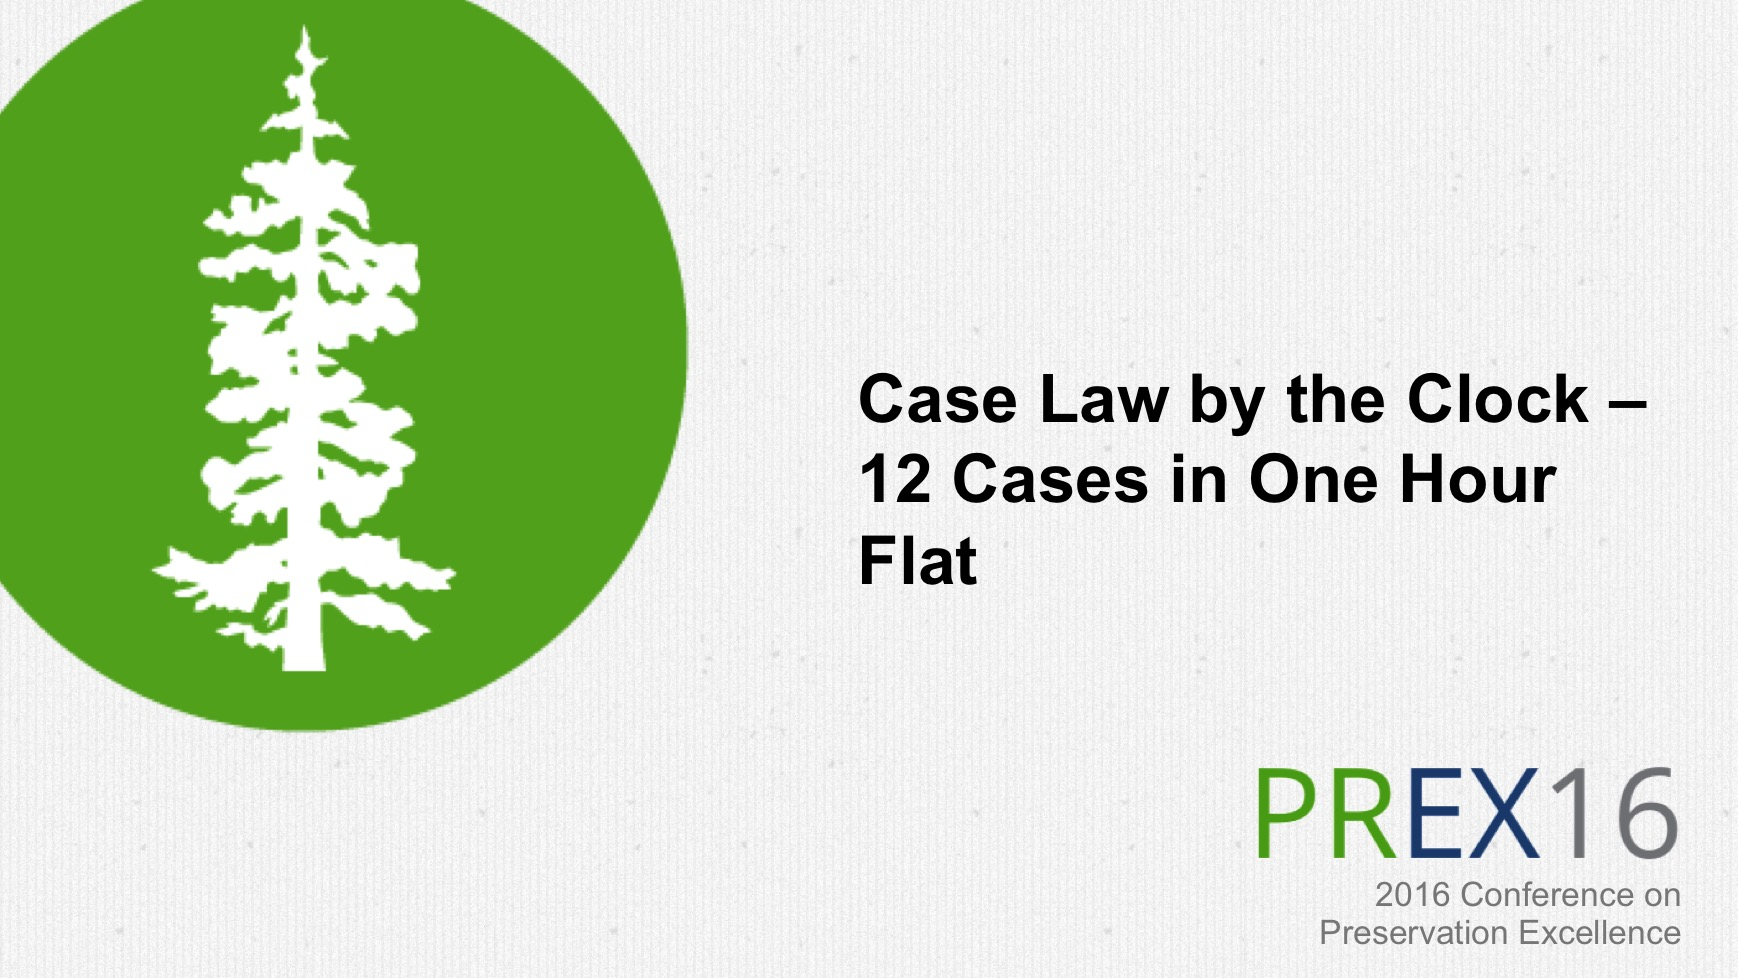 Case Law by the Clock — 12 Cases in One Hour Flat